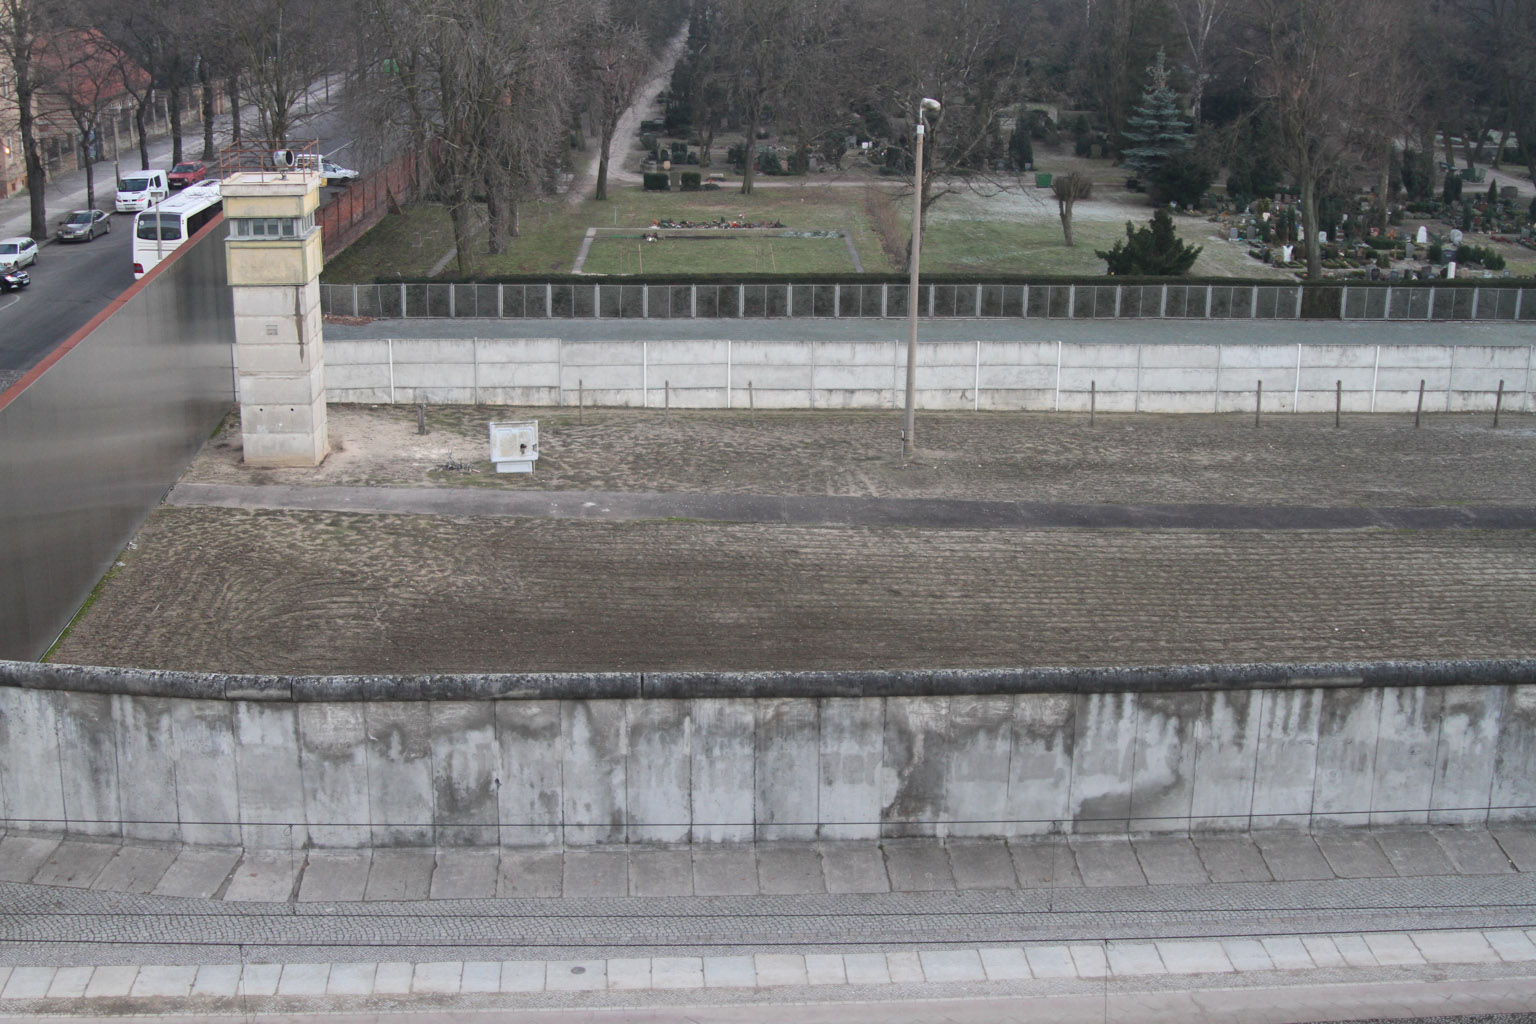 east and west Berlin wall: berlin wall, barrier that surrounded west berlin and prevented access to it from east berlin and adjacent areas of east germany during the period from 1961 to 1989.